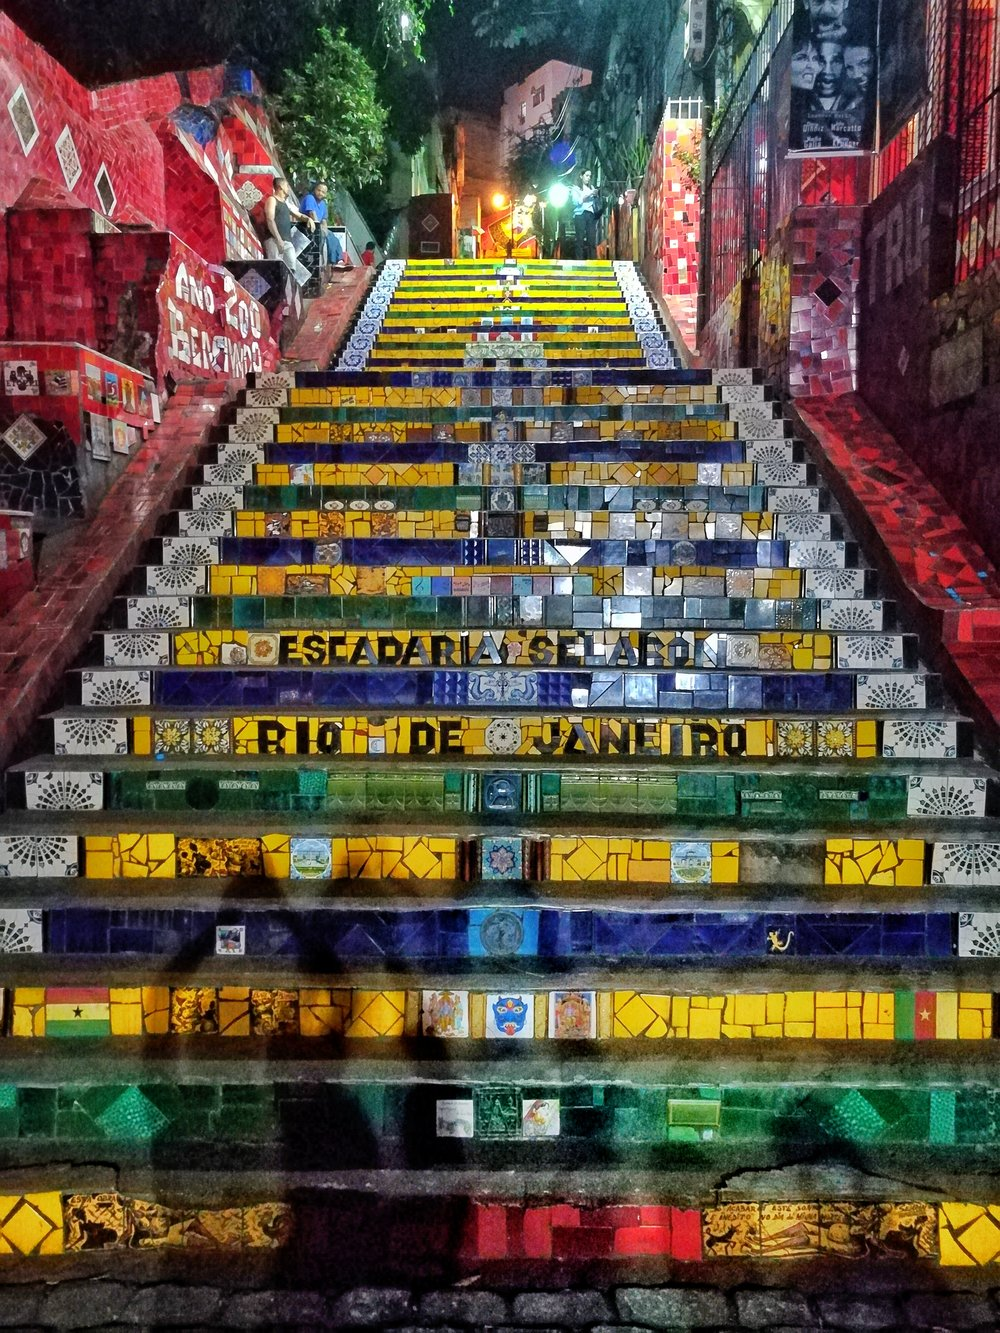 The work of Chilean-born artist Jorge Selarón in 1990. 215 steps, 2000 tiles, all beauty